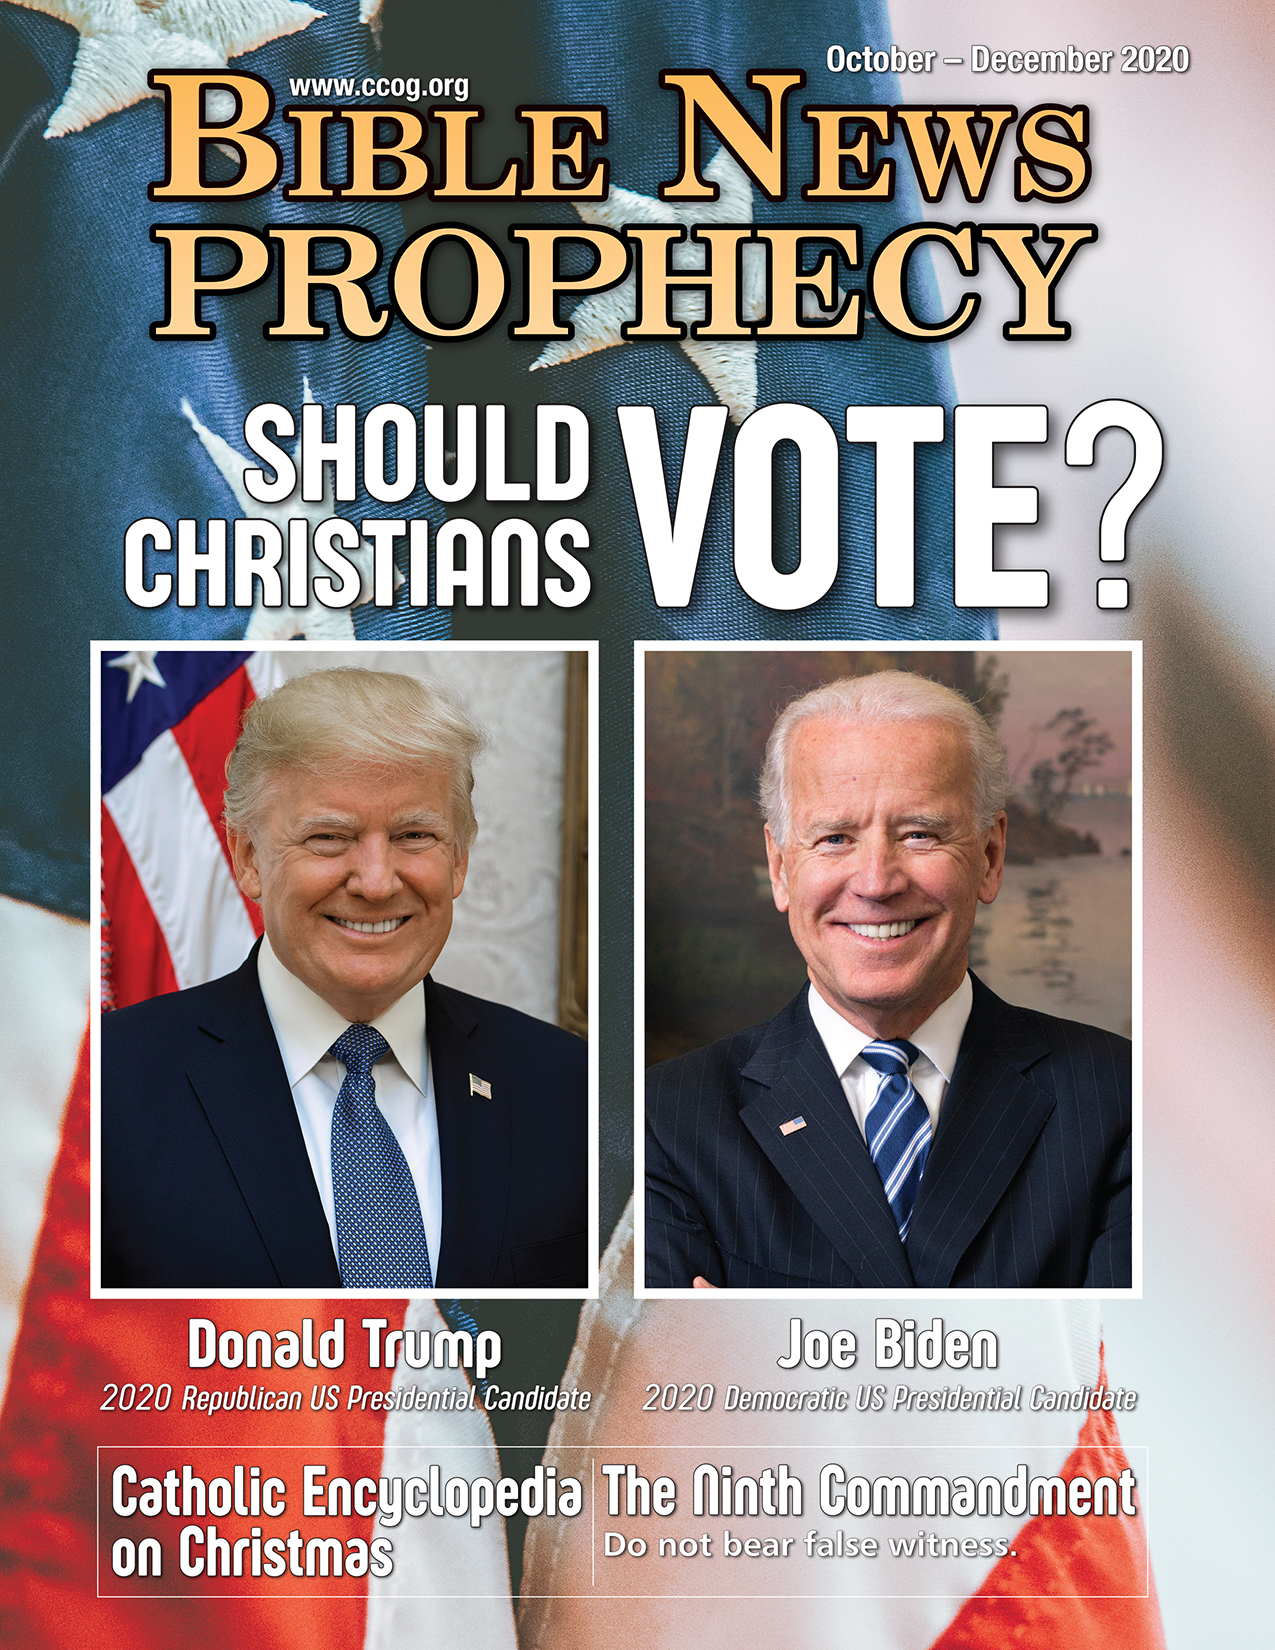 Bible News Prophecy October – December 2020: Should Christians VOTE?